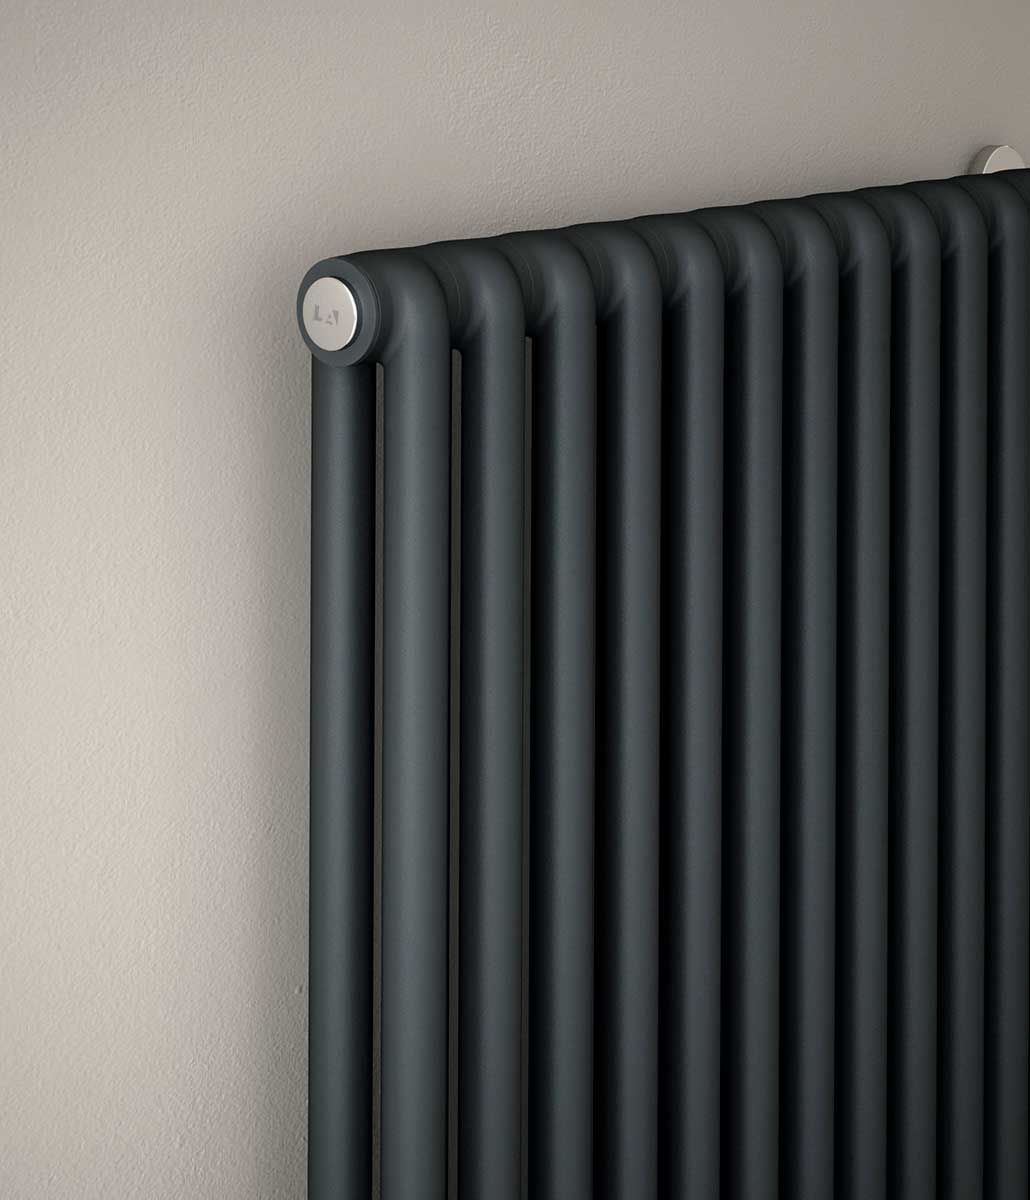 lamella radiateur top chauffage au gaz une chaudi re con delonghi chauffage gaz de ville e. Black Bedroom Furniture Sets. Home Design Ideas